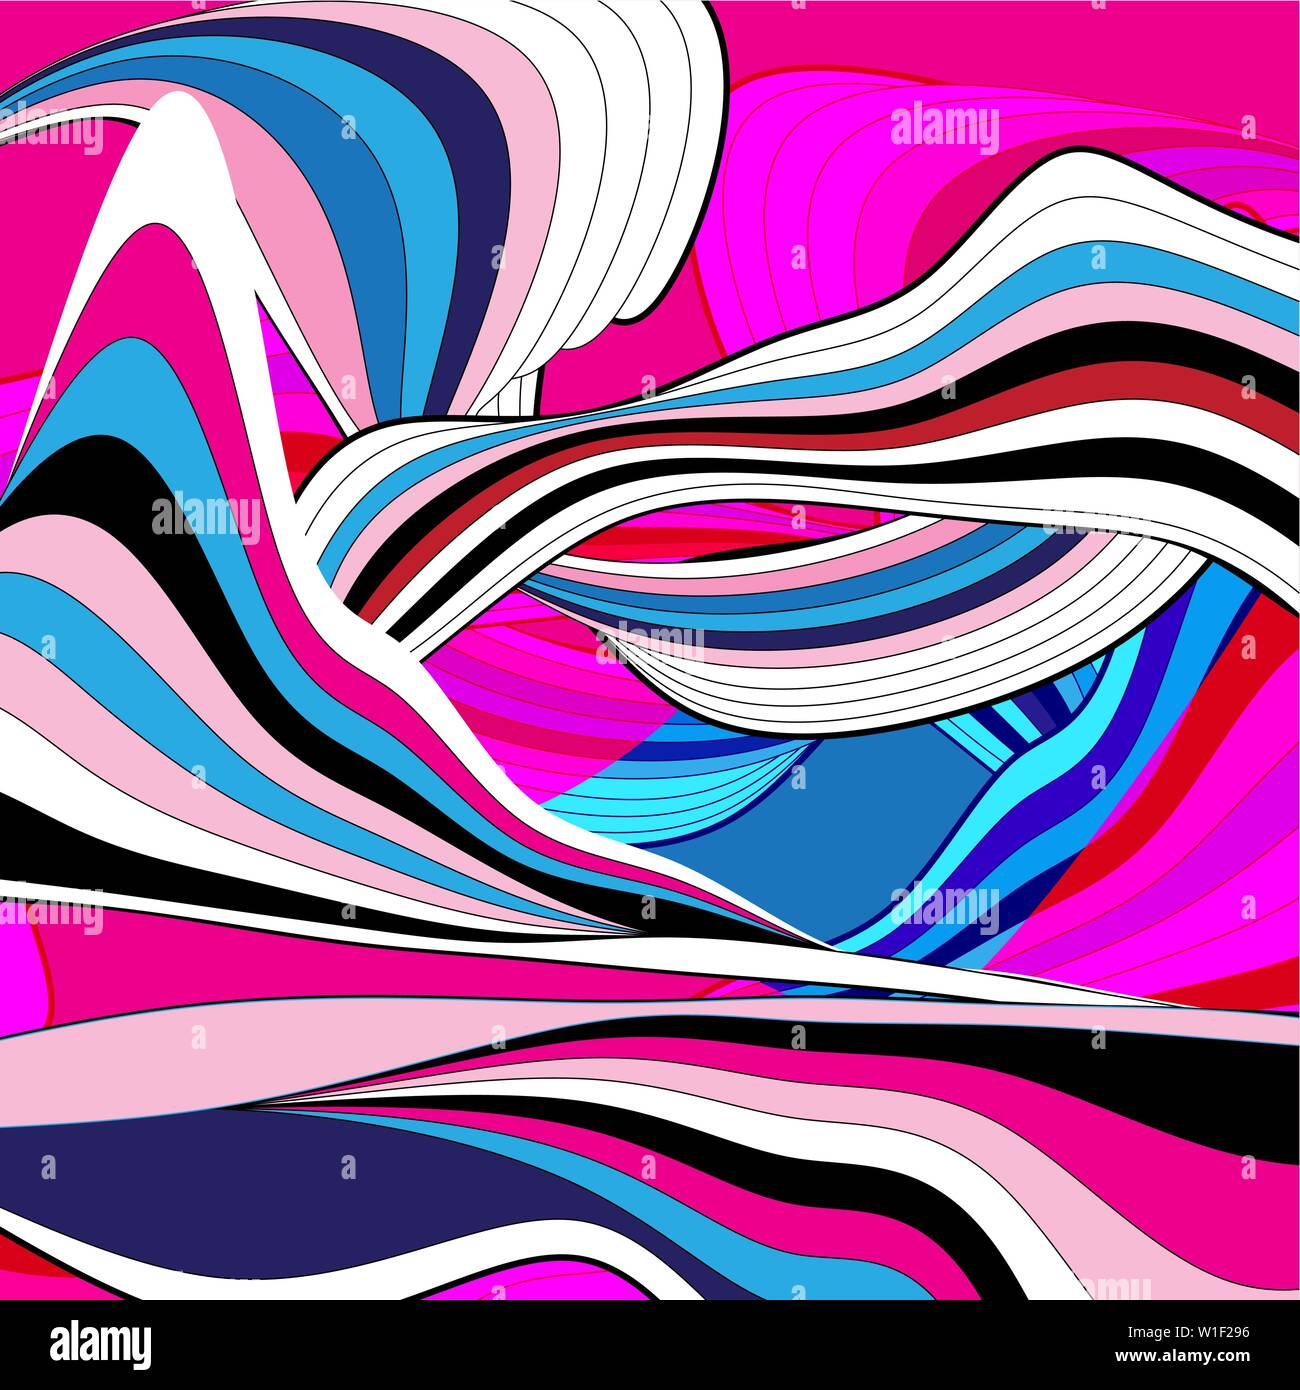 Abstract beautiful linear super wave vector graphics on a dark